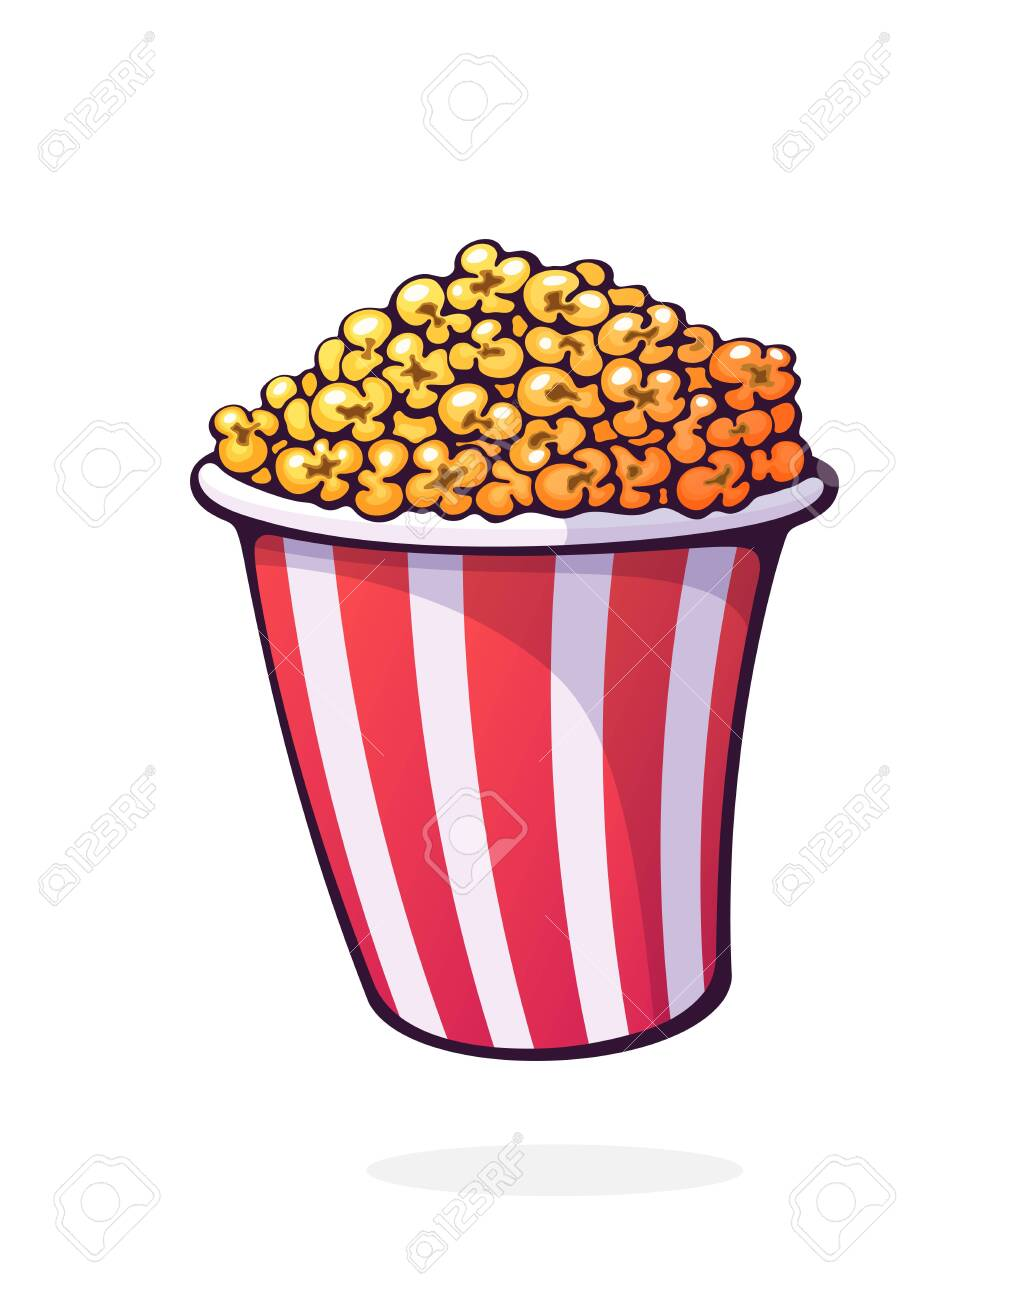 Bucket Full Of Popcorn Red And White Striped Paper Cup With Royalty Free Cliparts Vectors And Stock Illustration Image 148905951